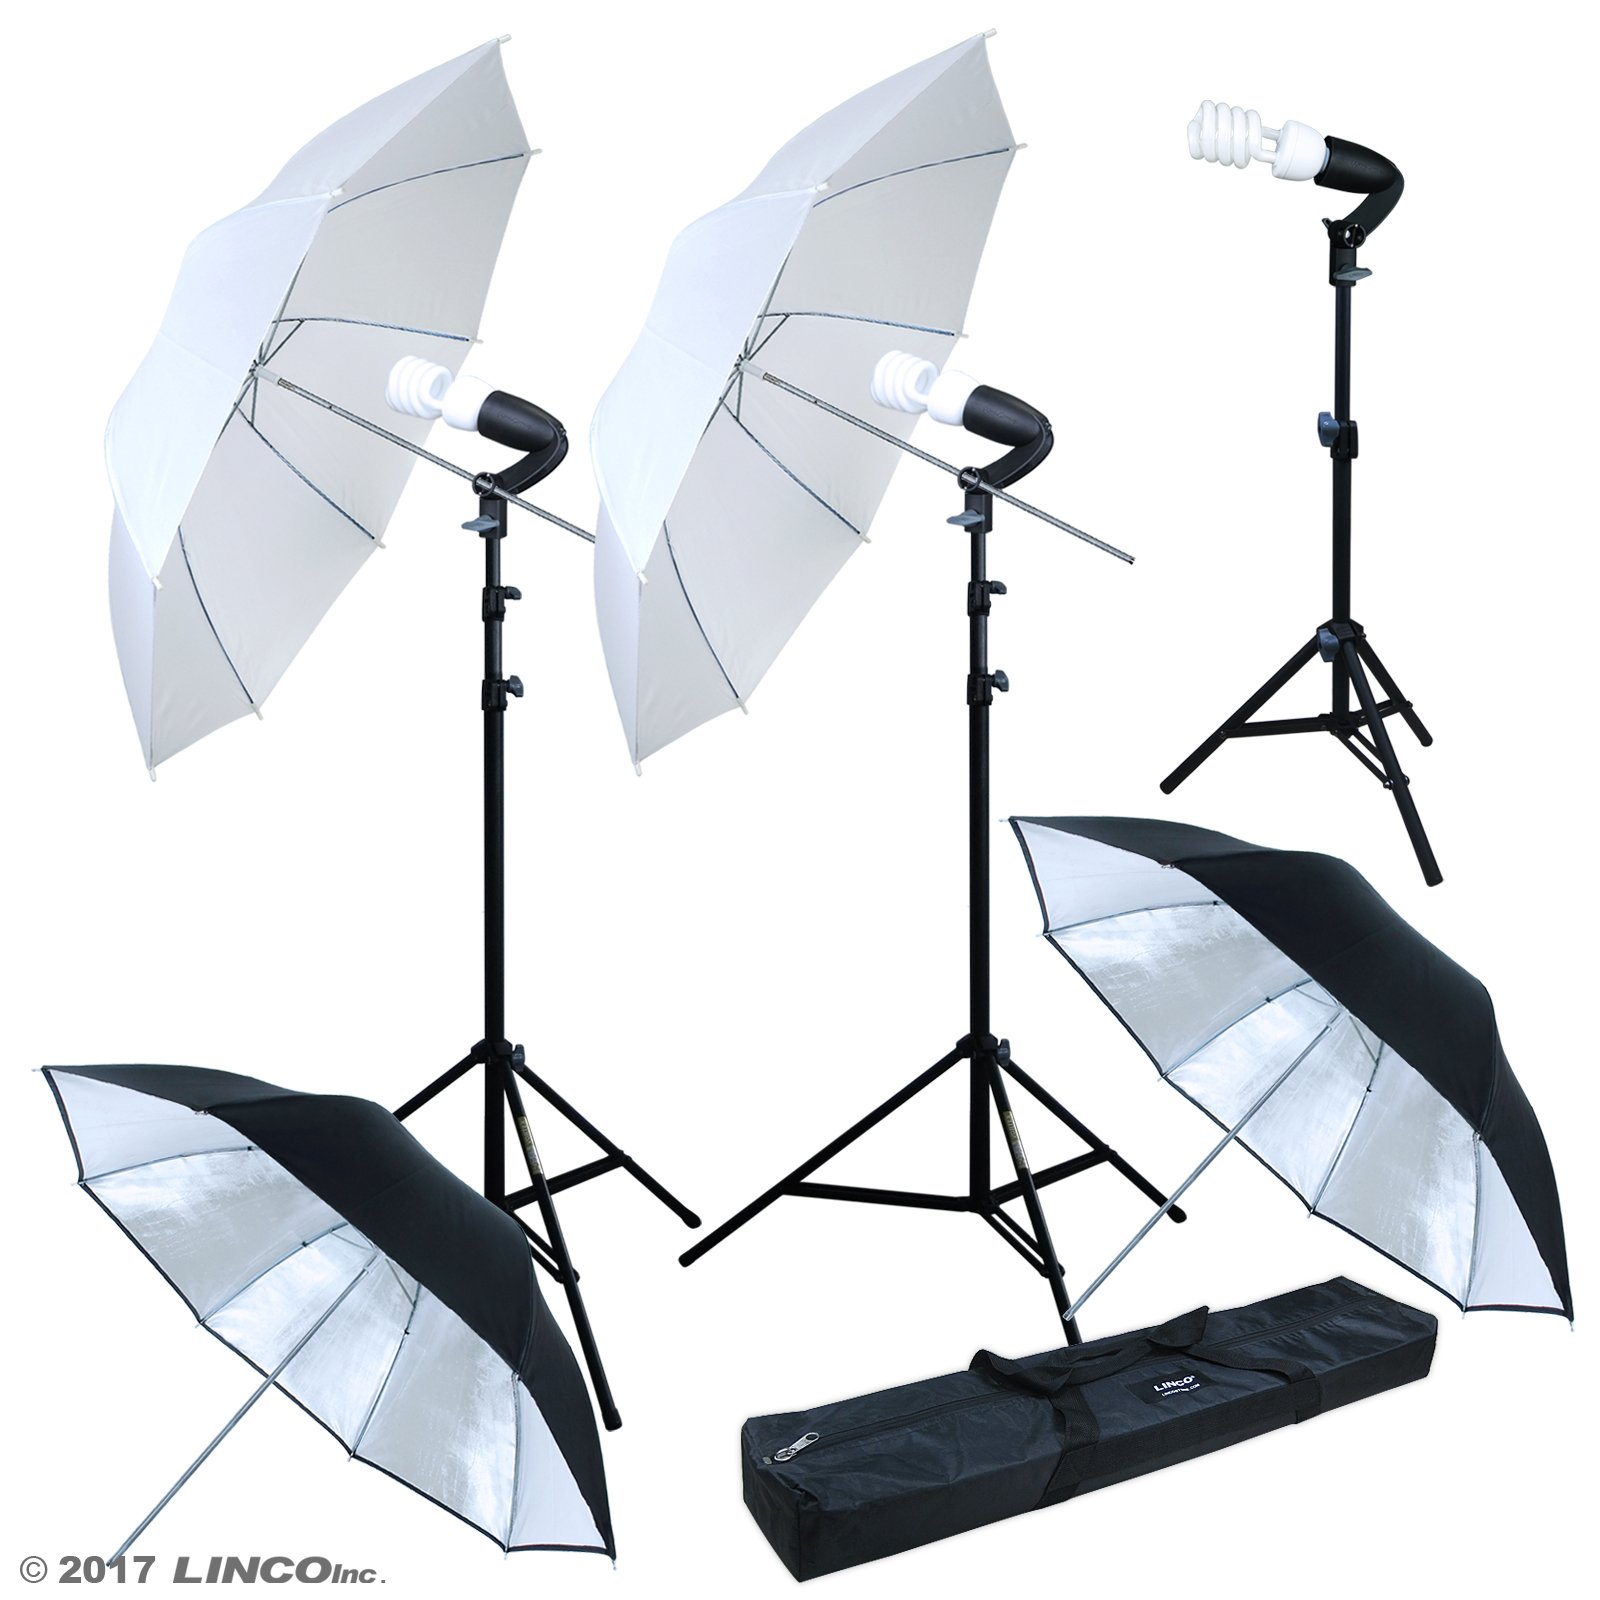 Linco Lincostore Photography Photo Portrait Studio Lighting 600W Umbrella Continuous Lighting Kit for Video Shooting AM126 by Linco